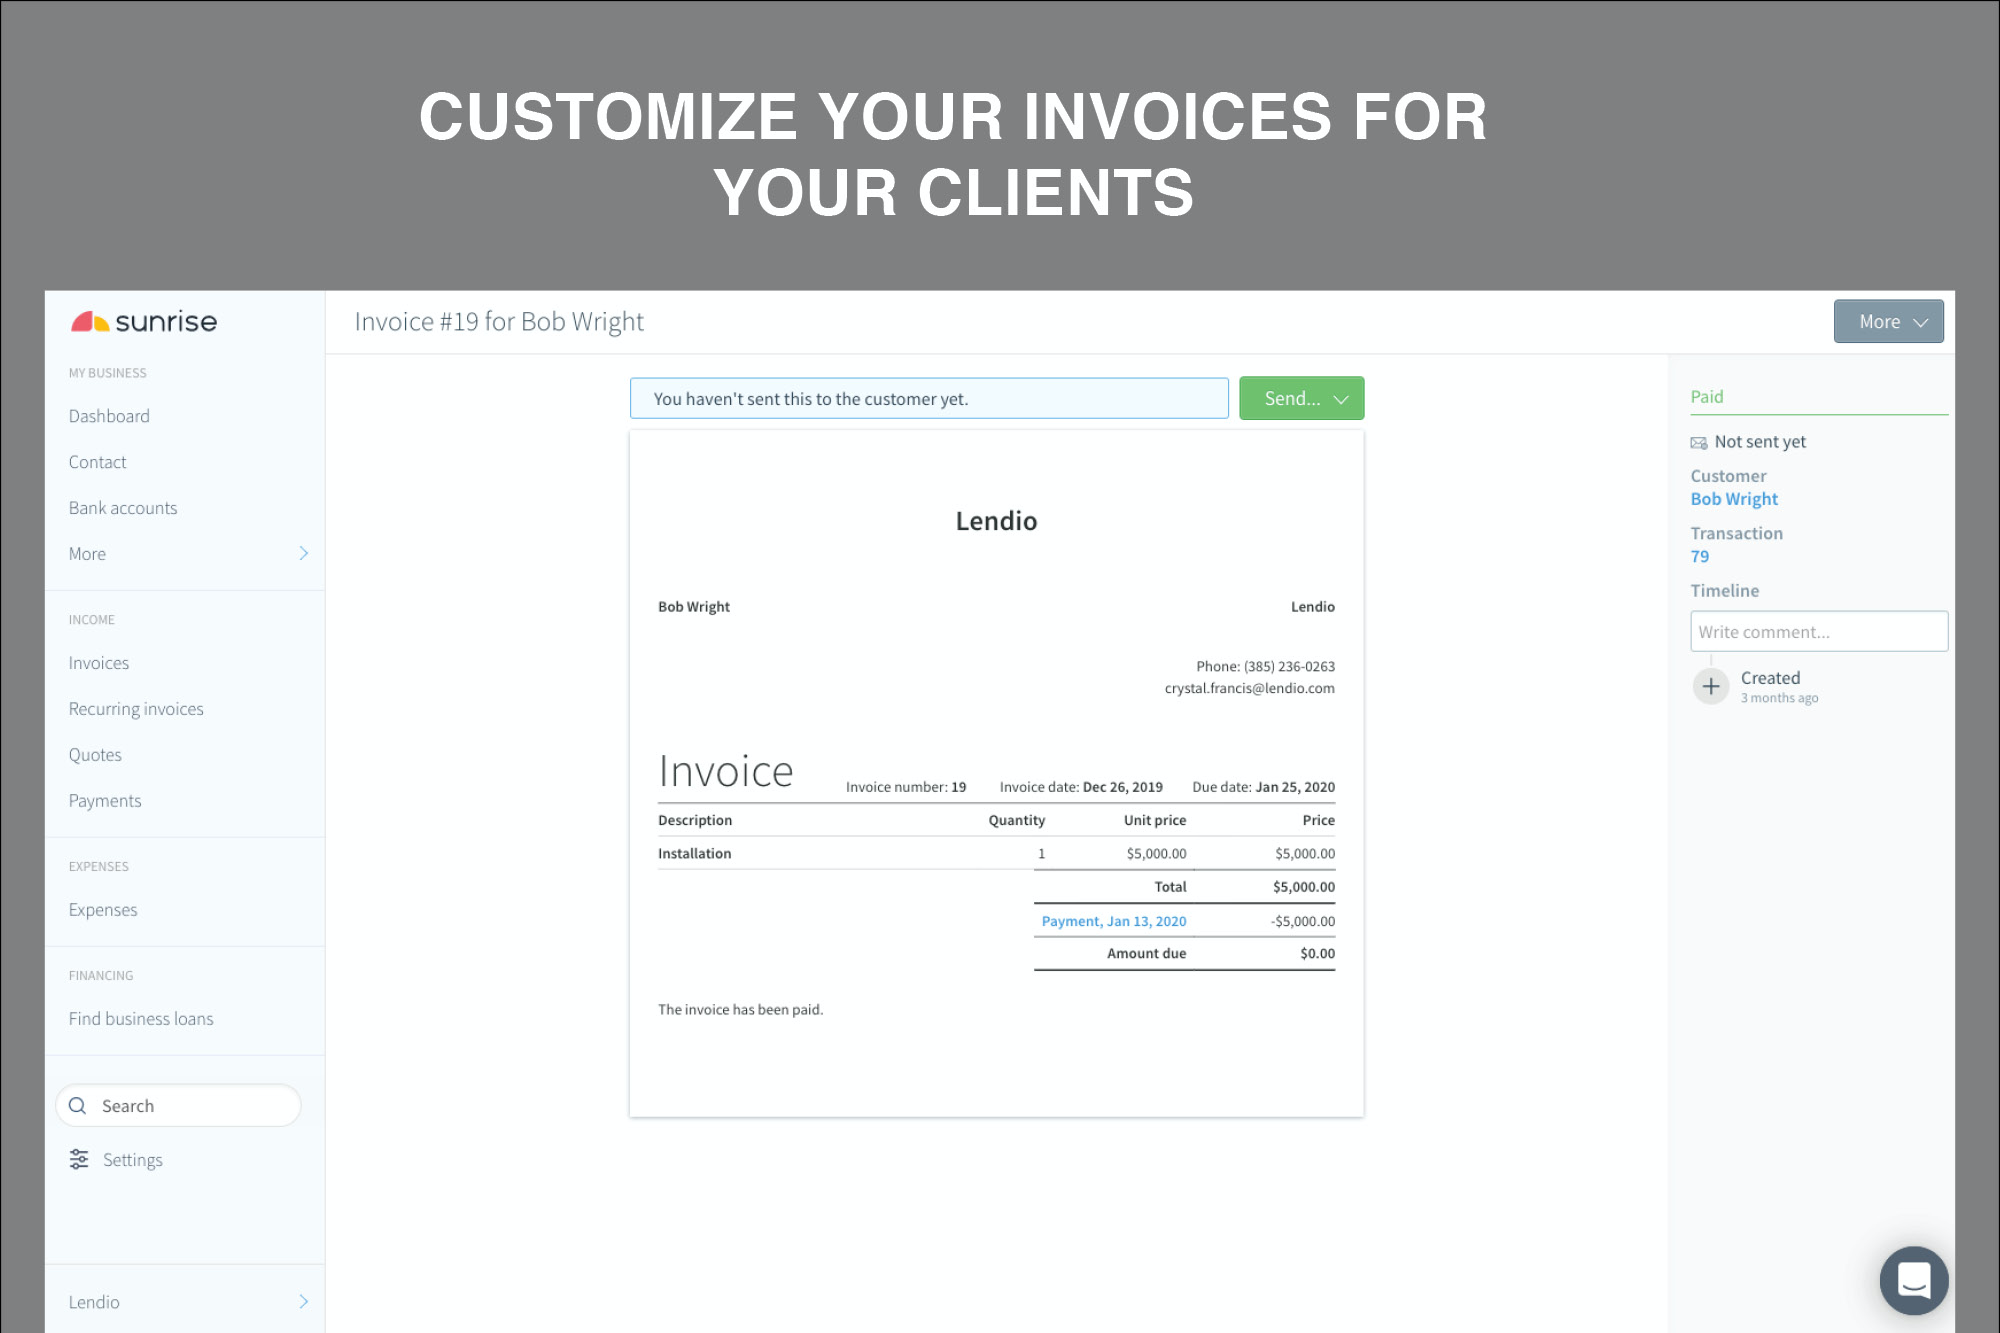 Customize your invoices for your clients.